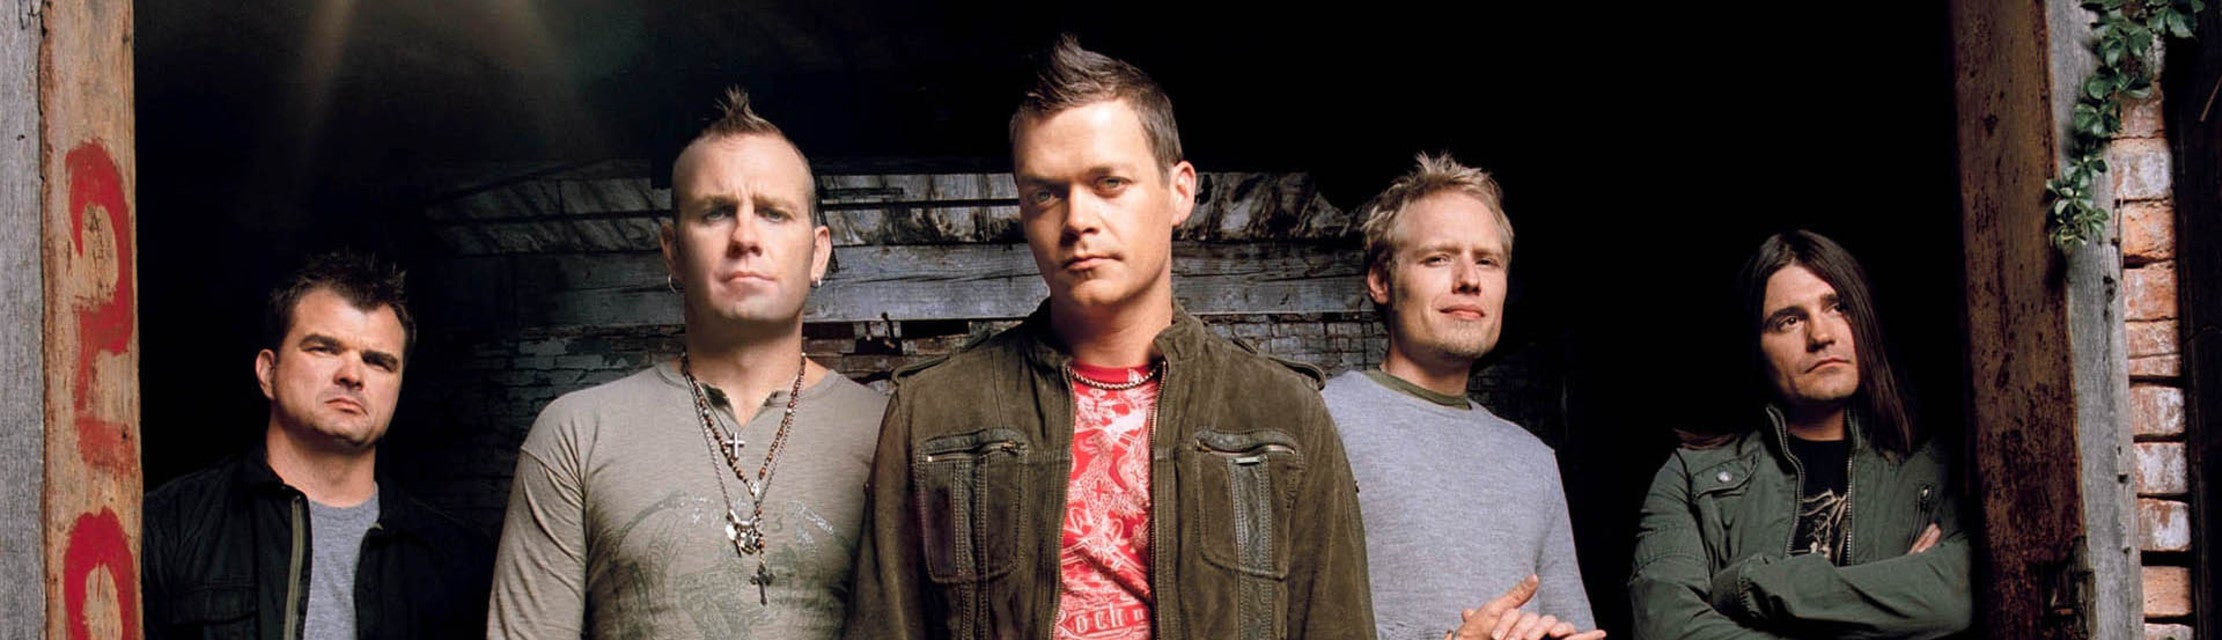 3 Doors Down Tickets  sc 1 st  Gametime & 3 Doors Down Tickets | Gametime